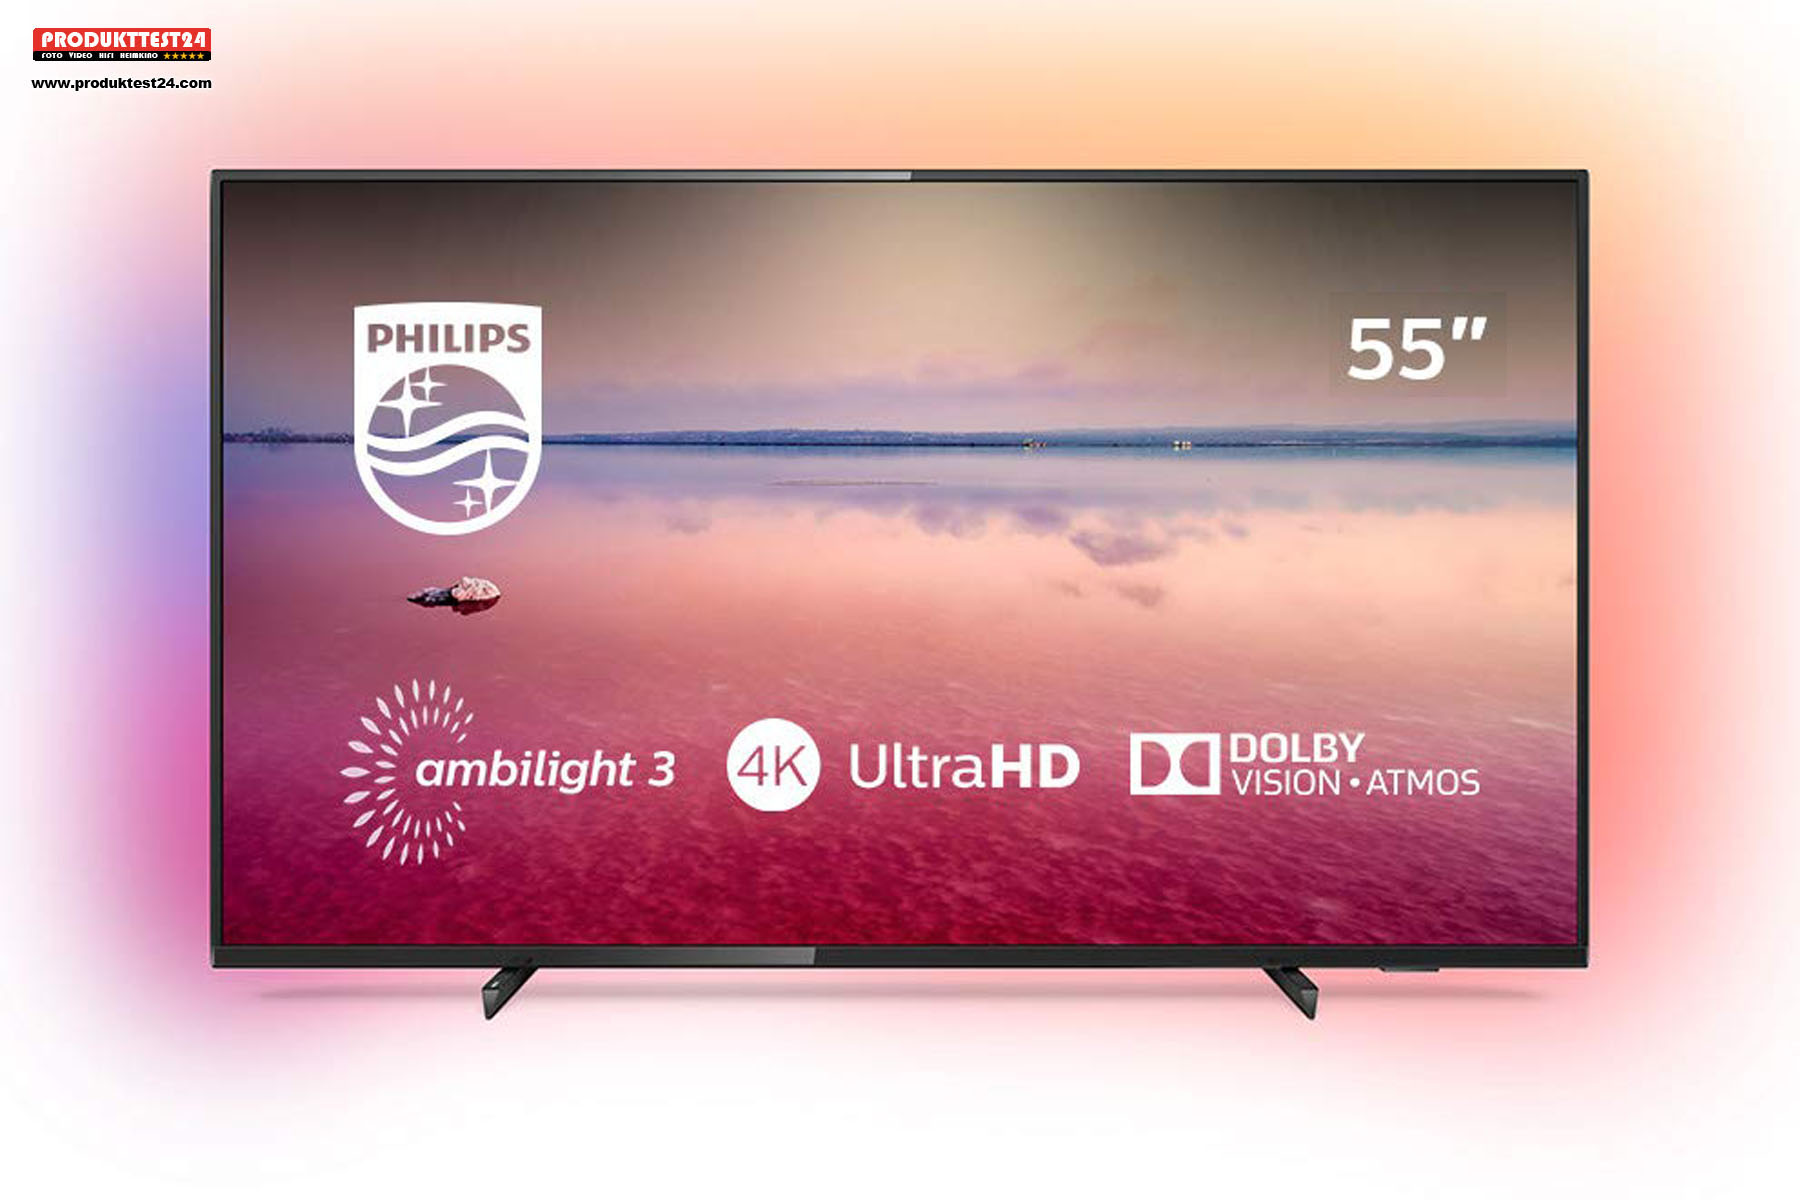 Philips 55PUS6704/12 Ultra HD Fernseher mit Ambilight, Dolby Vision und Dolby Atmos